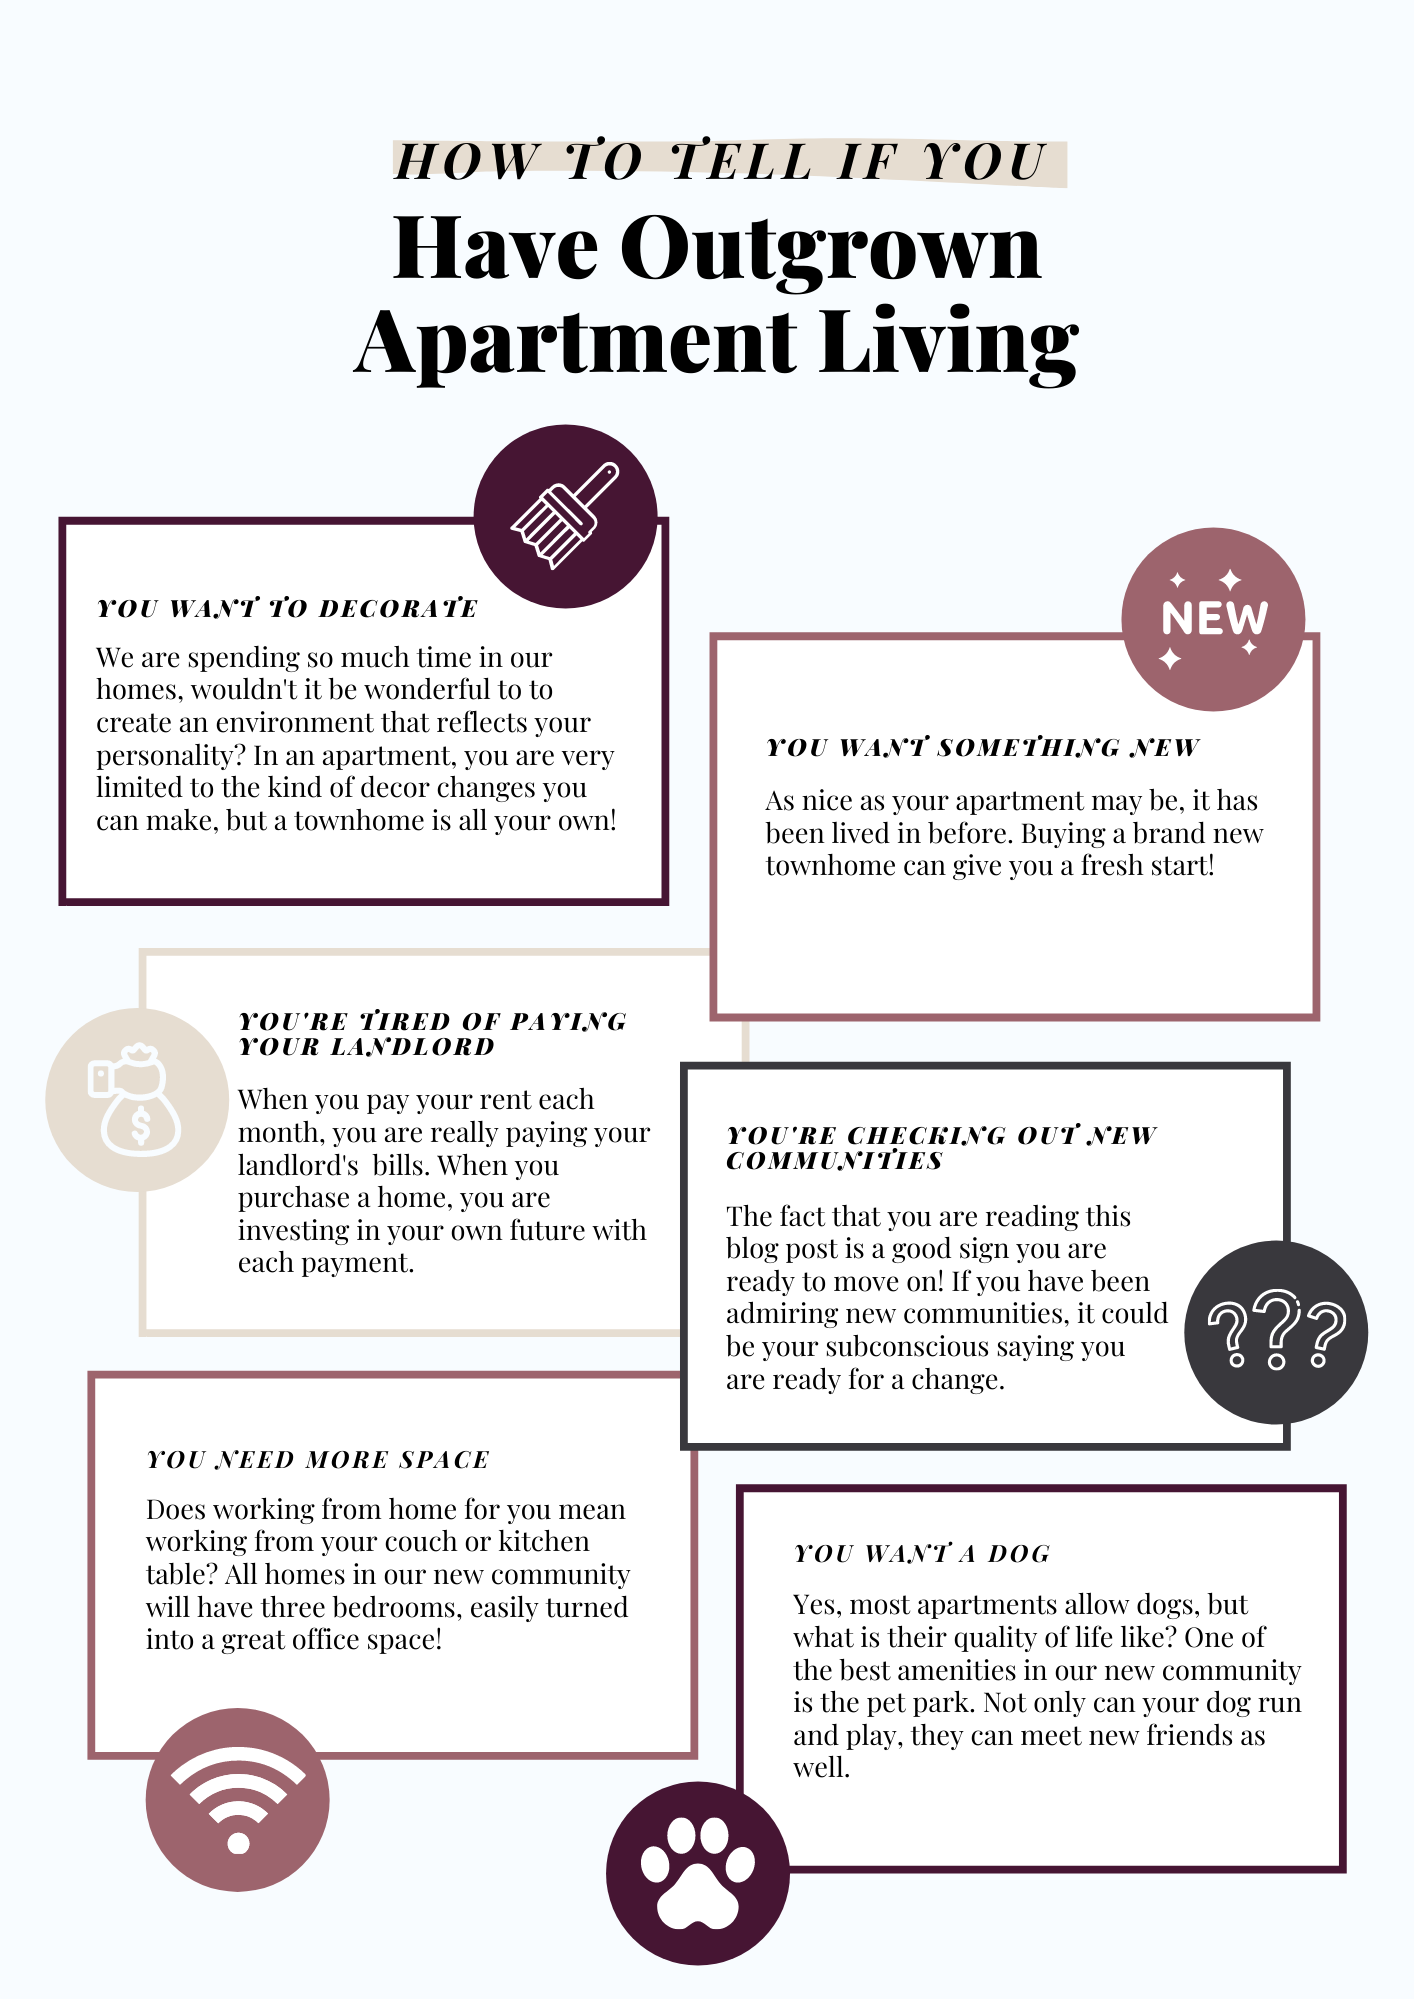 Have you outgrown your apartment?